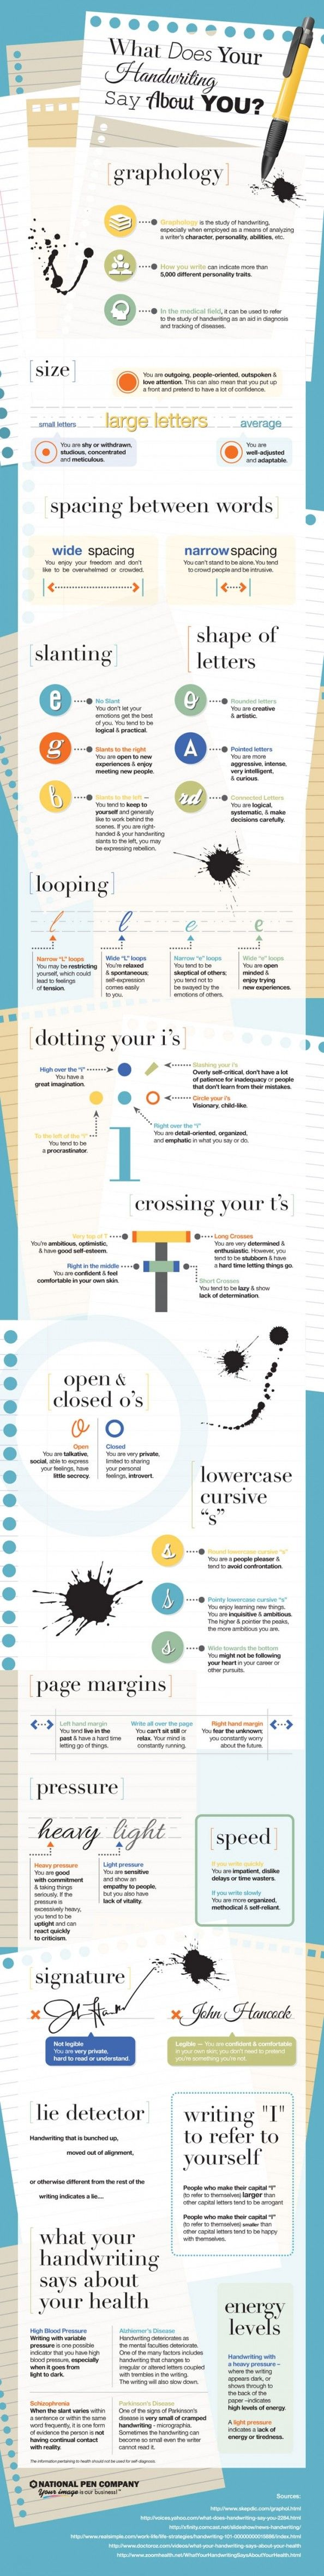 Understanding your personality type goes a long way towards helping you pursue the right opportunities. This infographic from CAS covers some interesting info on various personality types: